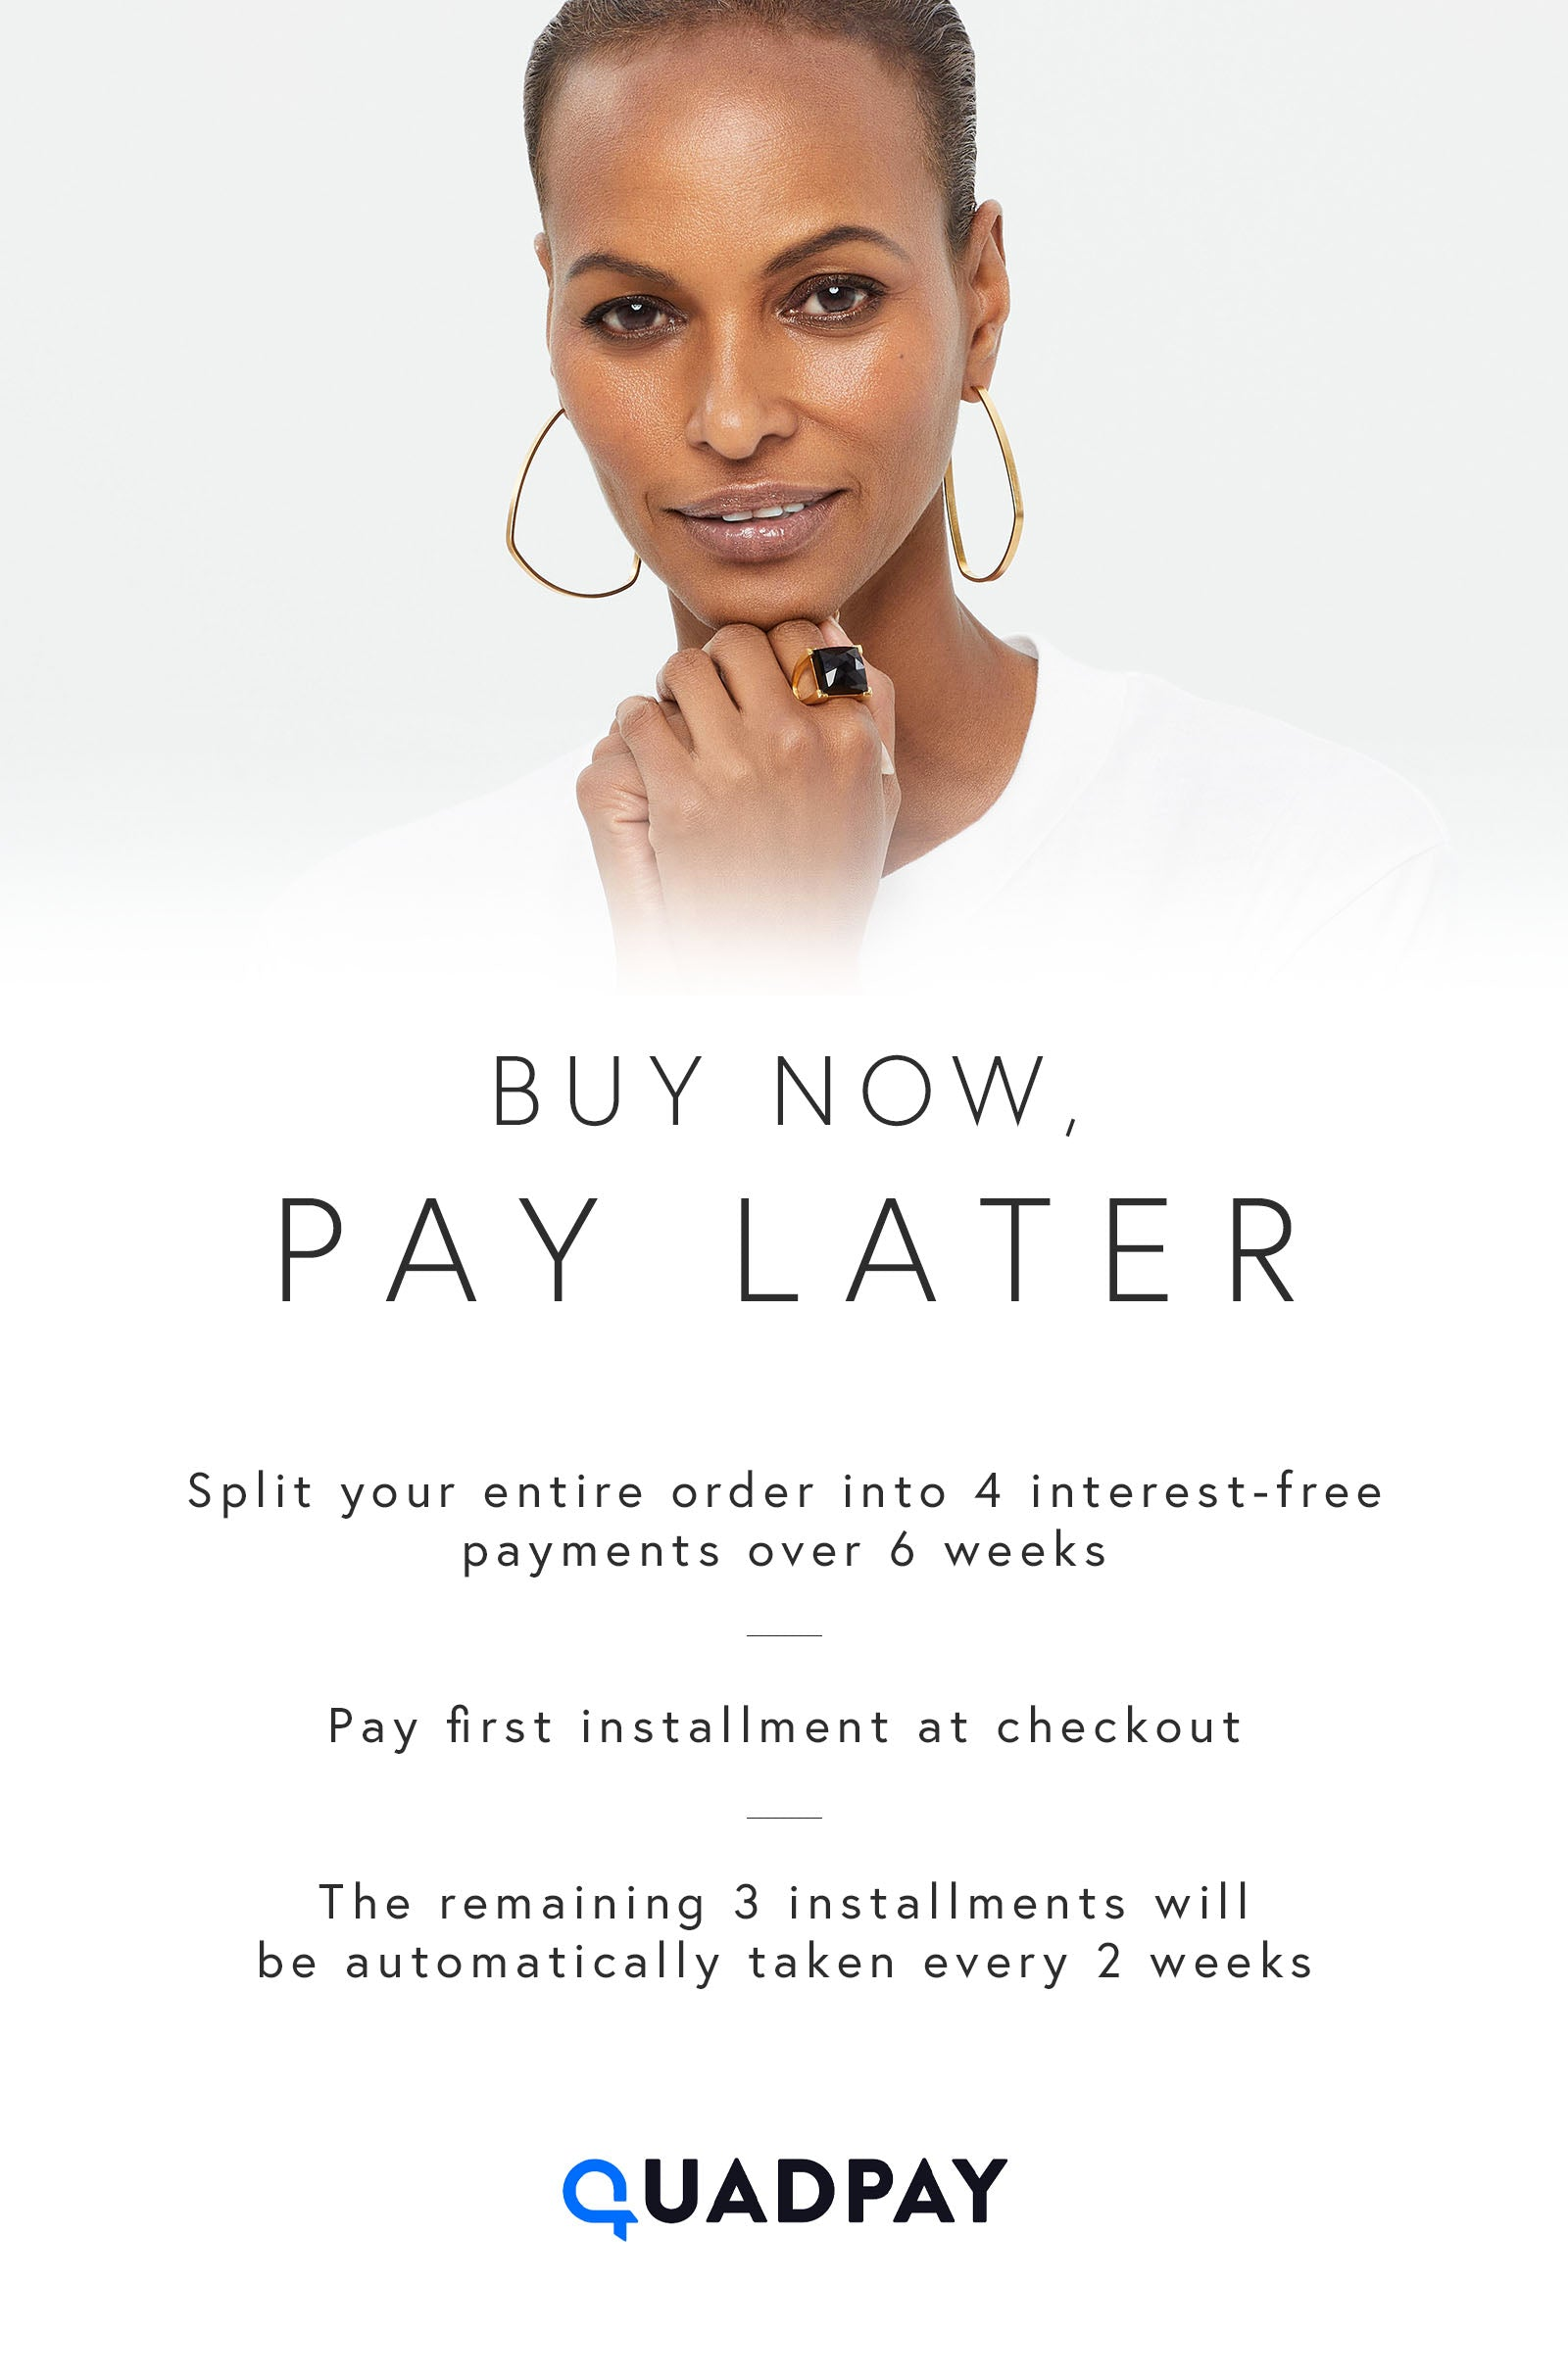 DEAN DAVIDSON JEWELRY BUY NOW PAY LATER QUADPAY